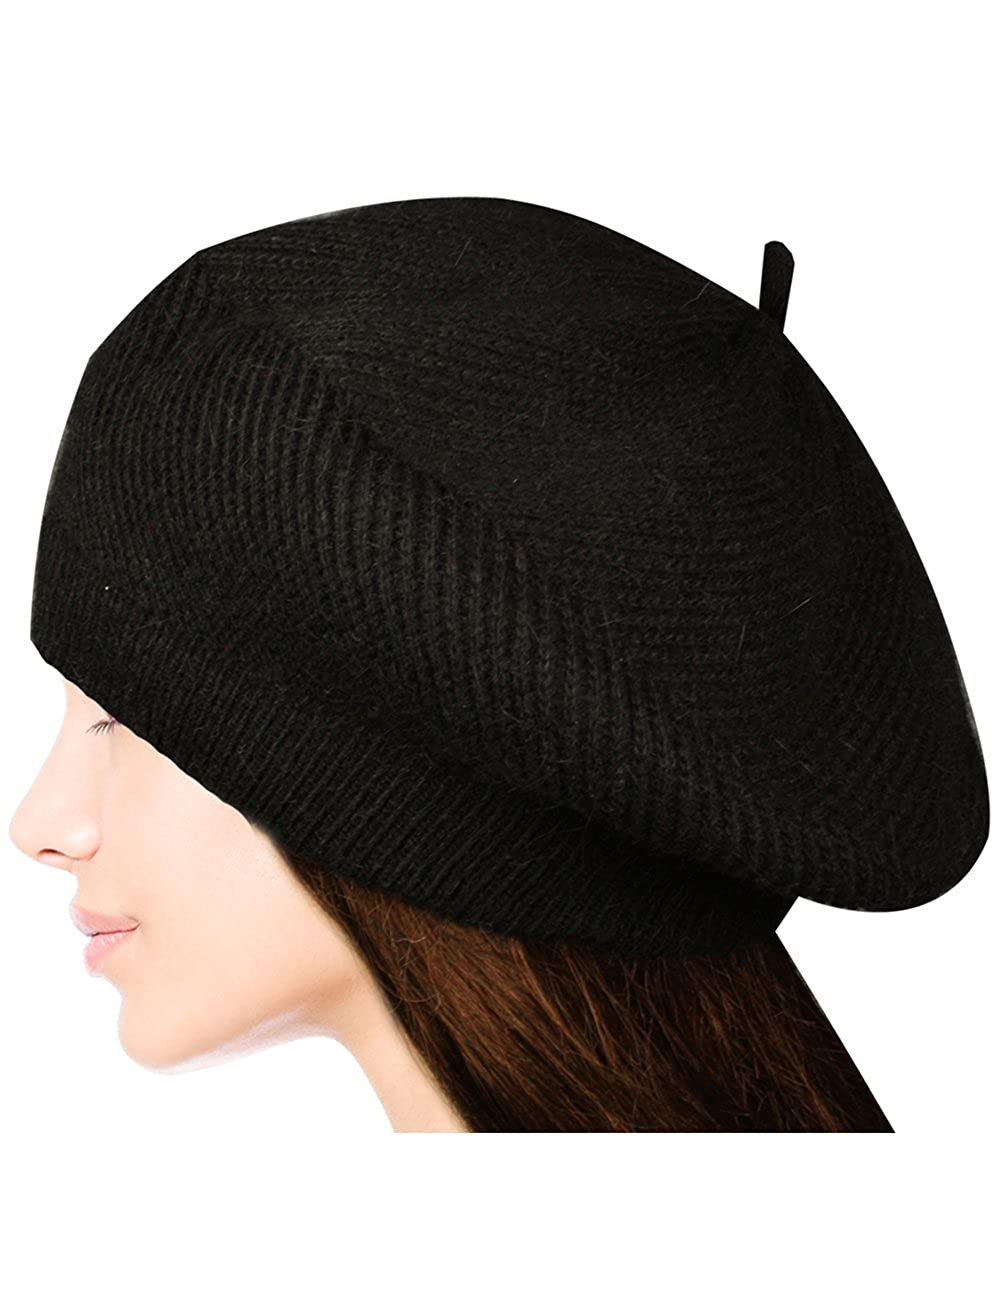 Hat knit quickly, simply, interestingly